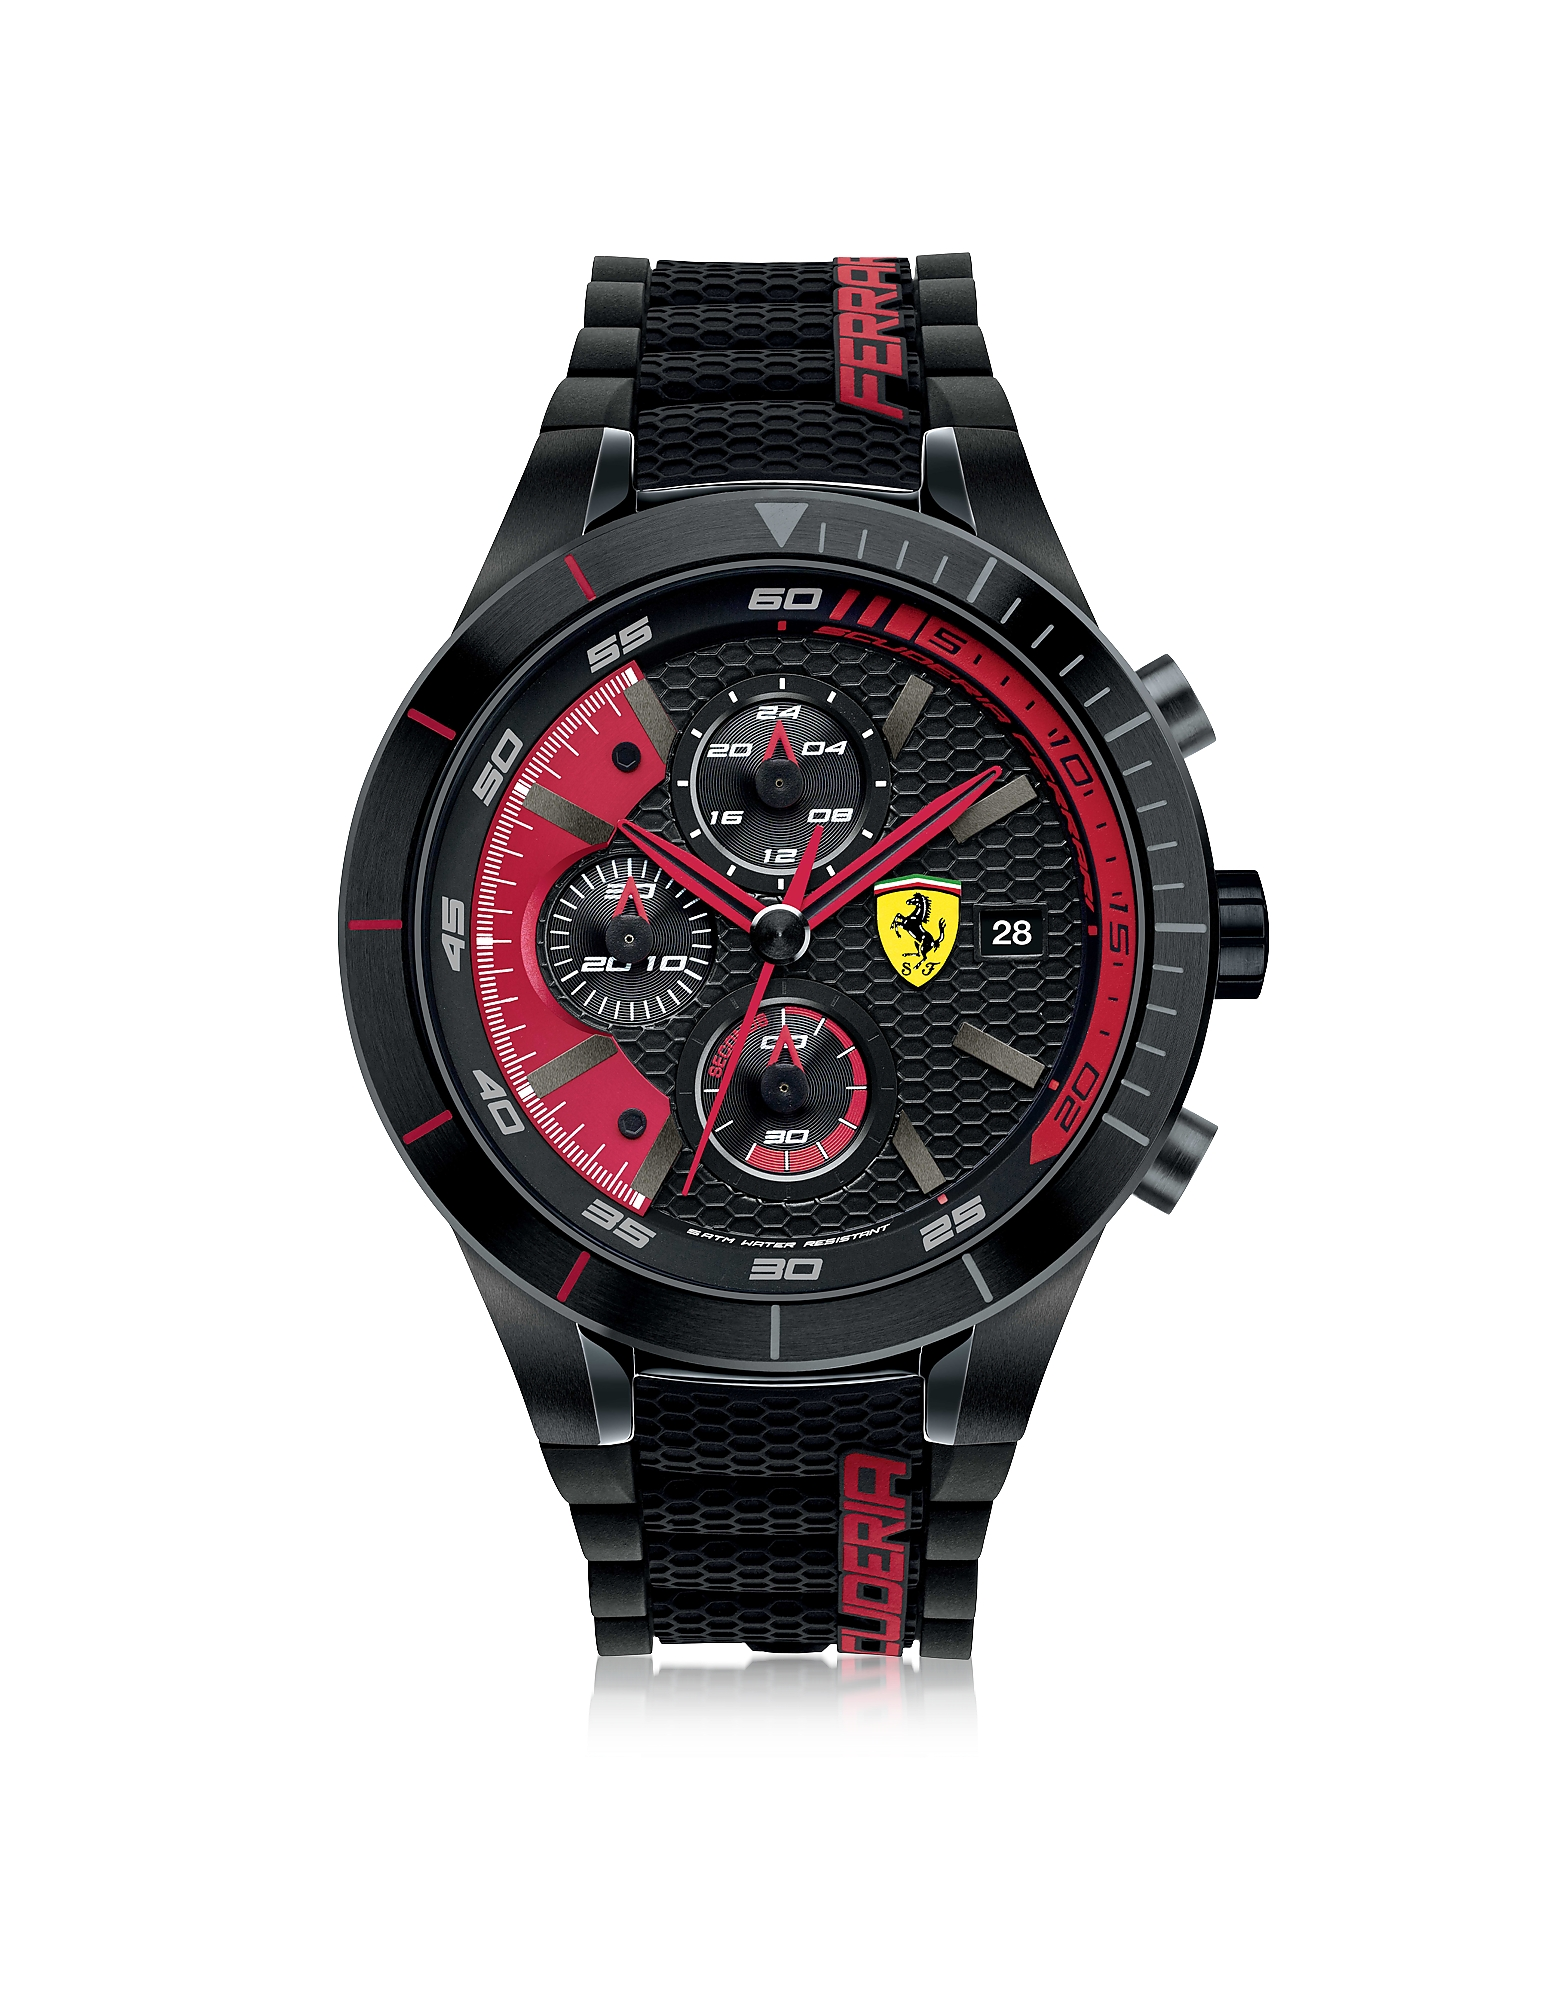 Ferrari Men's Watches, RedRev Evo Black and Red Stainless Steel Case and Silicone Strap Men's Chrono